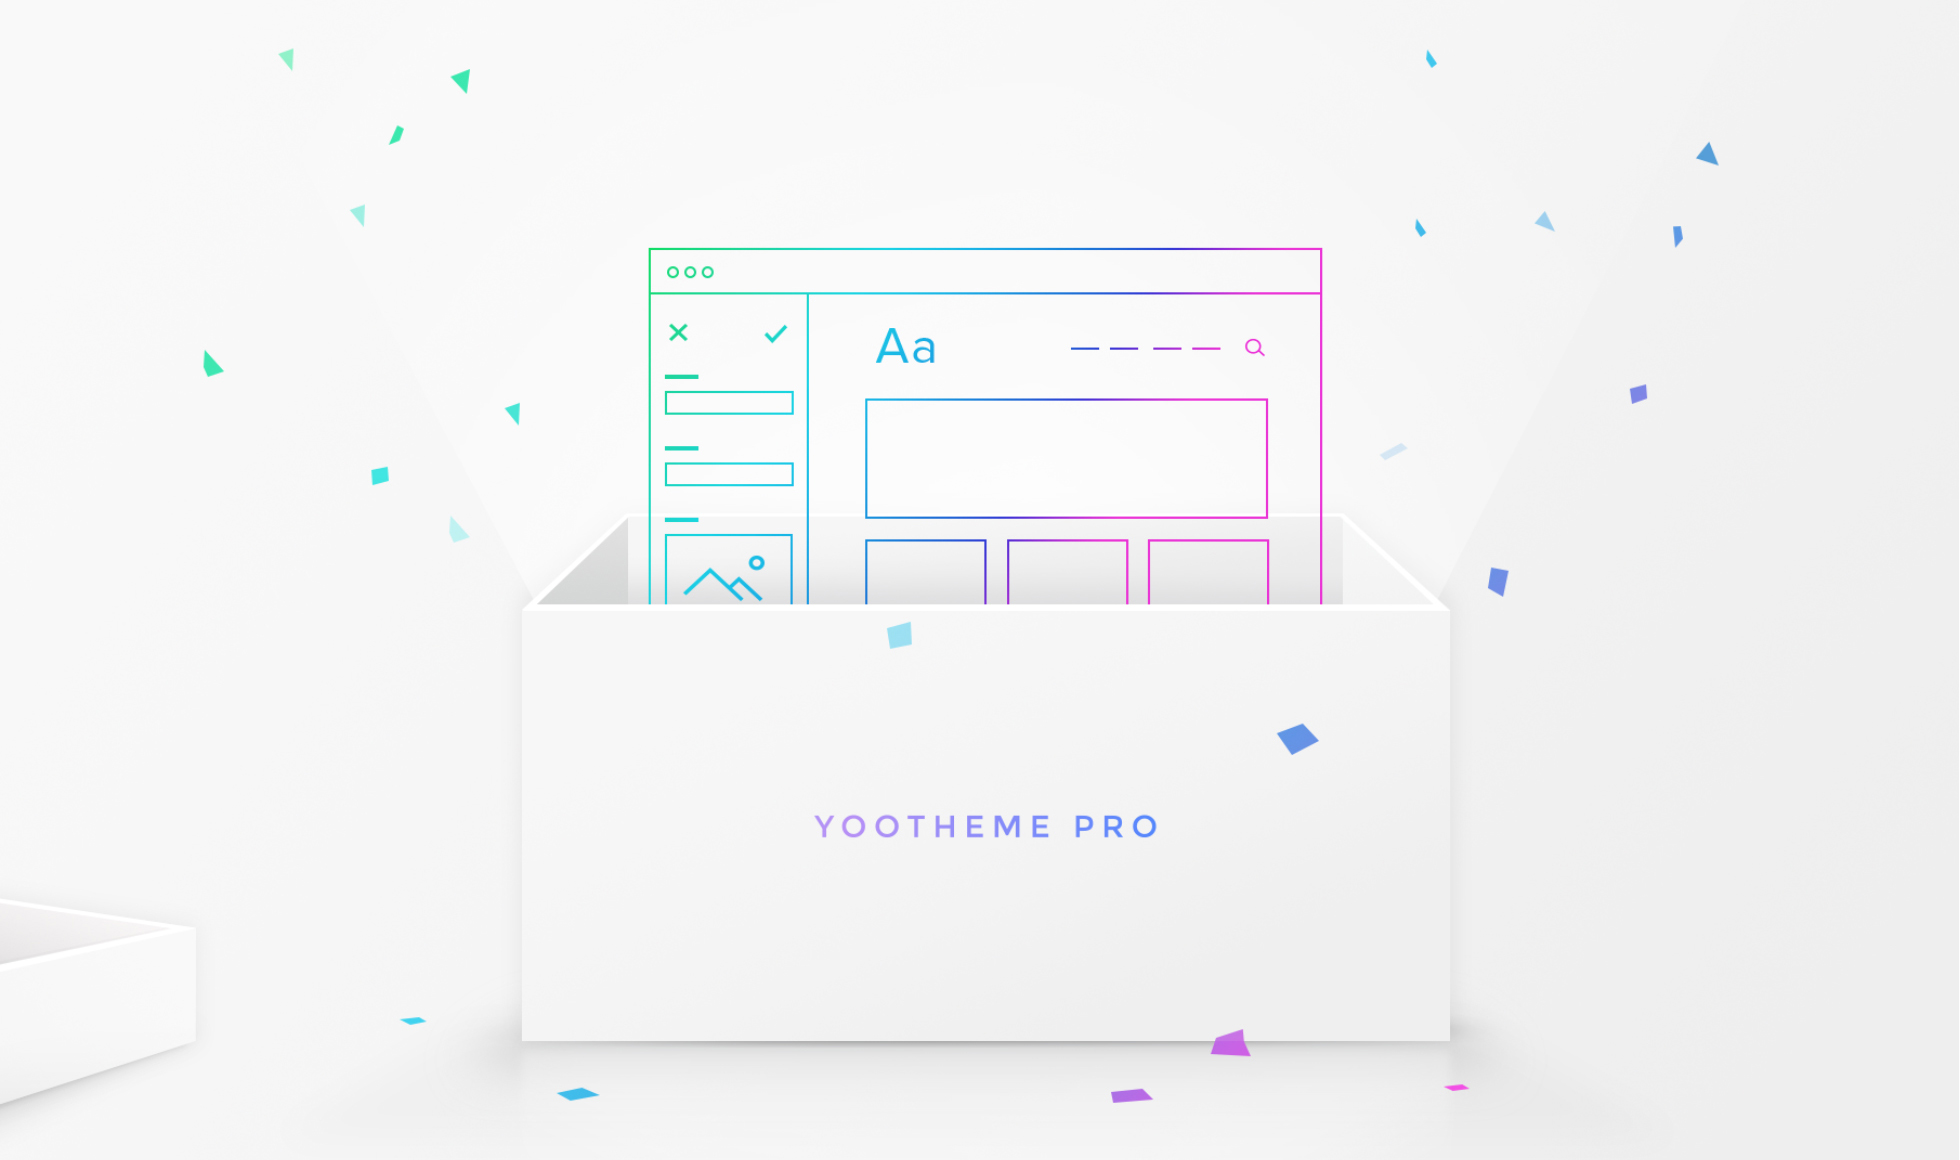 YOOtheme Pro Website Builder – Create websites in no time - YOOtheme